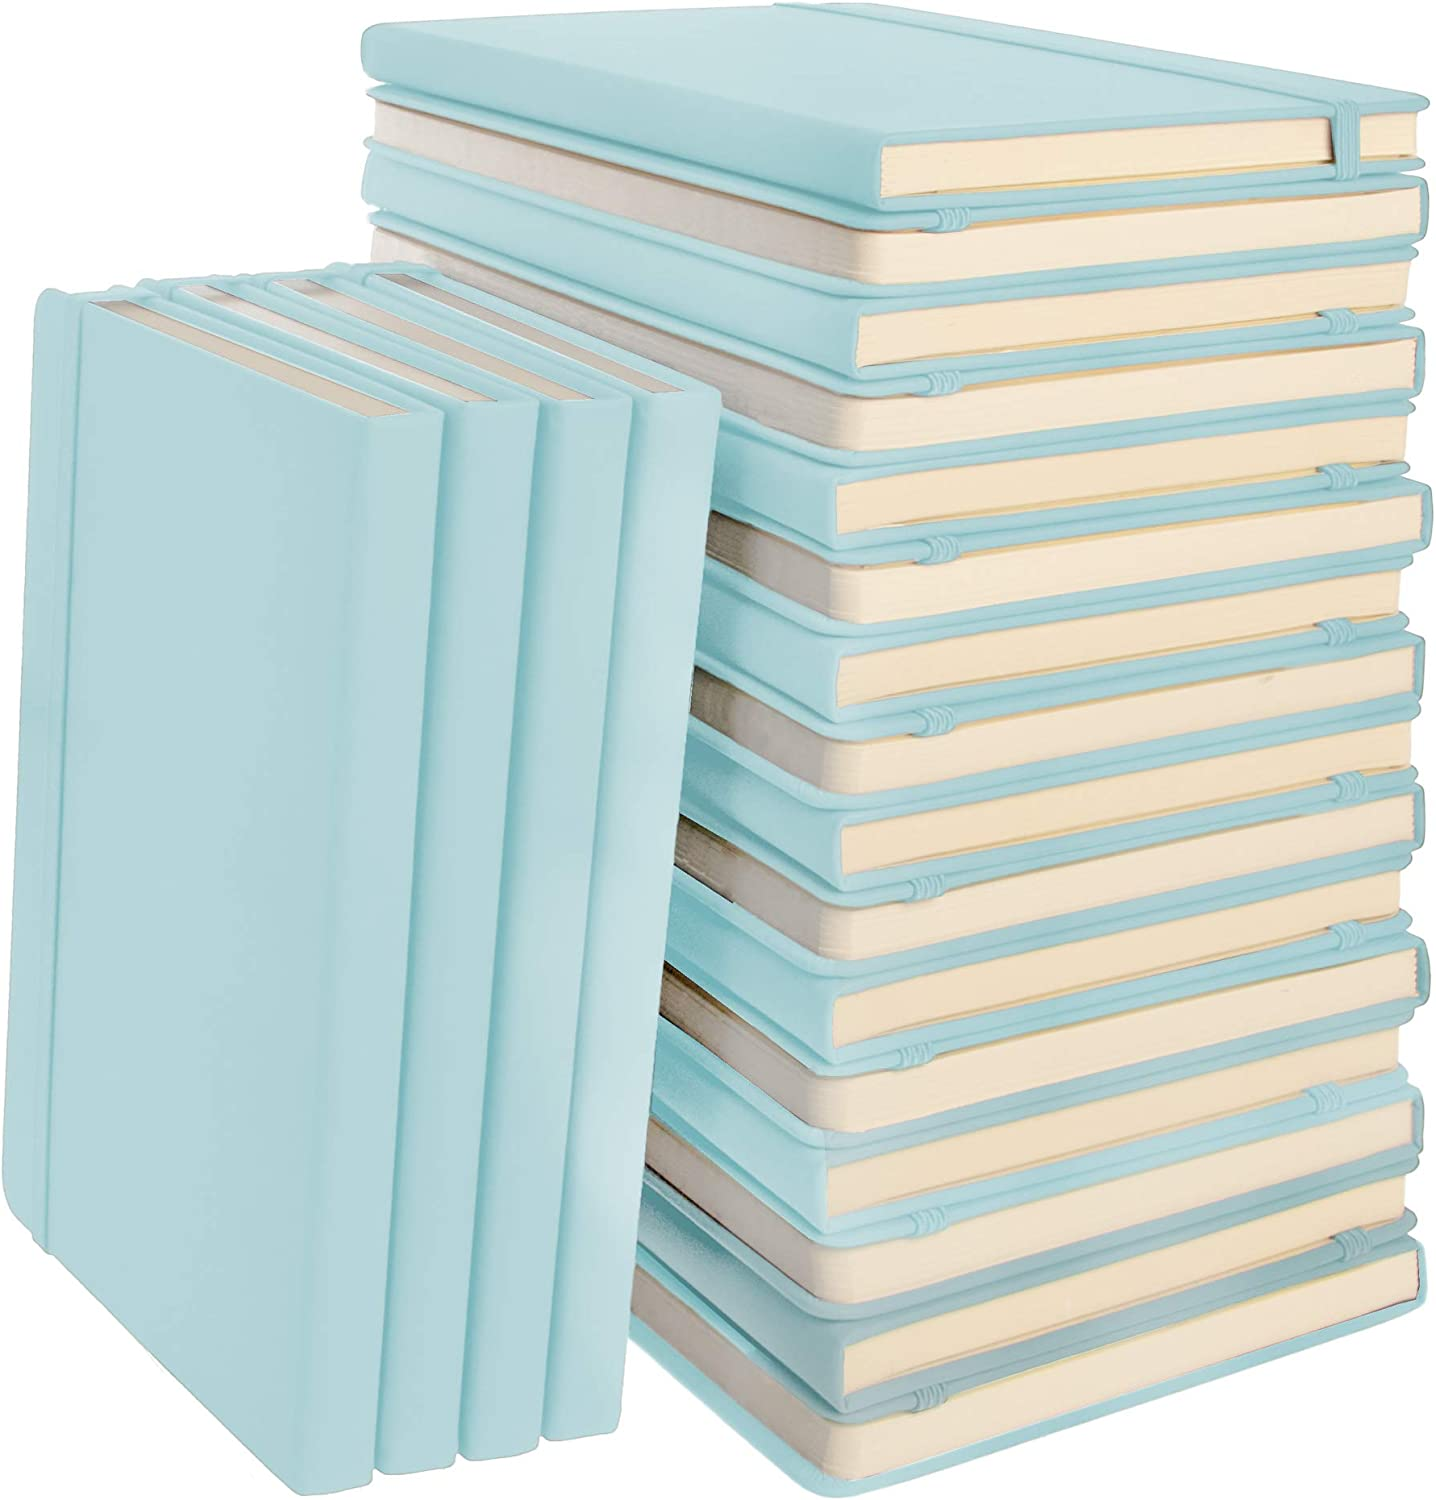 Simply Genius (20 Pack) A5 Hardcover Bullet Notebooks Dotted Grid Notebook/Journal, Leatherette Dotted Bullet Grid Journal, 192pg Dot Grid Notebook, 5.7 x 8.4 Inches, Light Blue